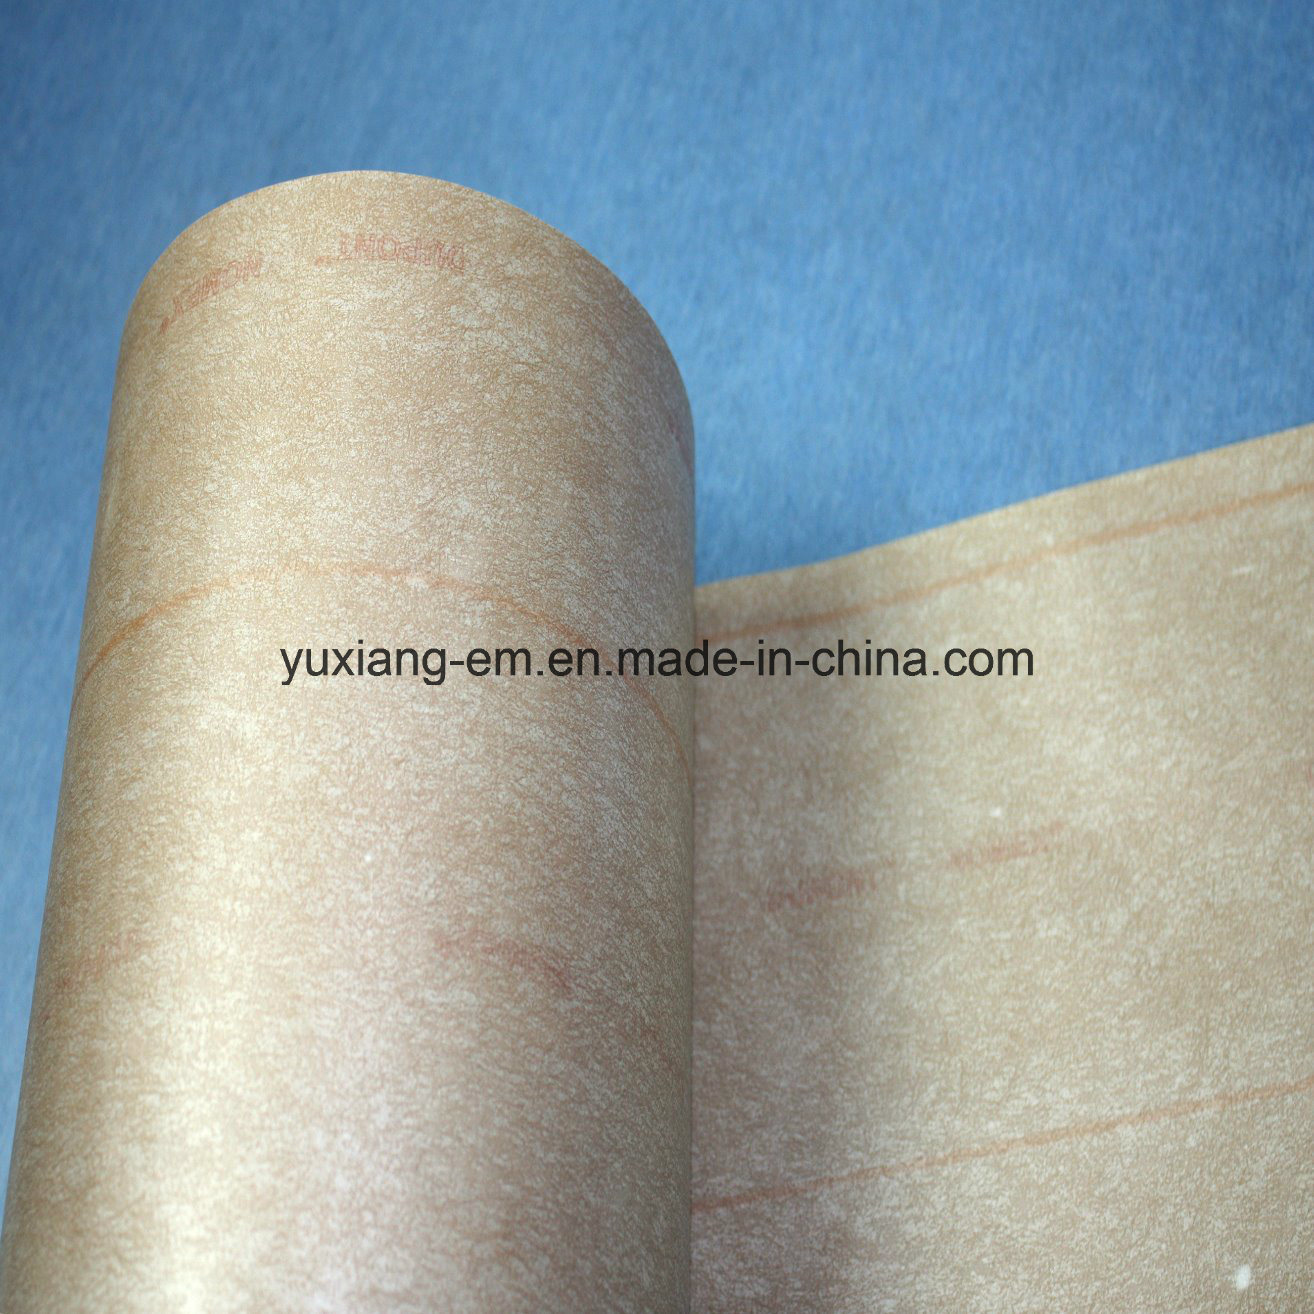 Hot Sale Electrical Material Electrical Insulating Paper Nhn (H CLASS)